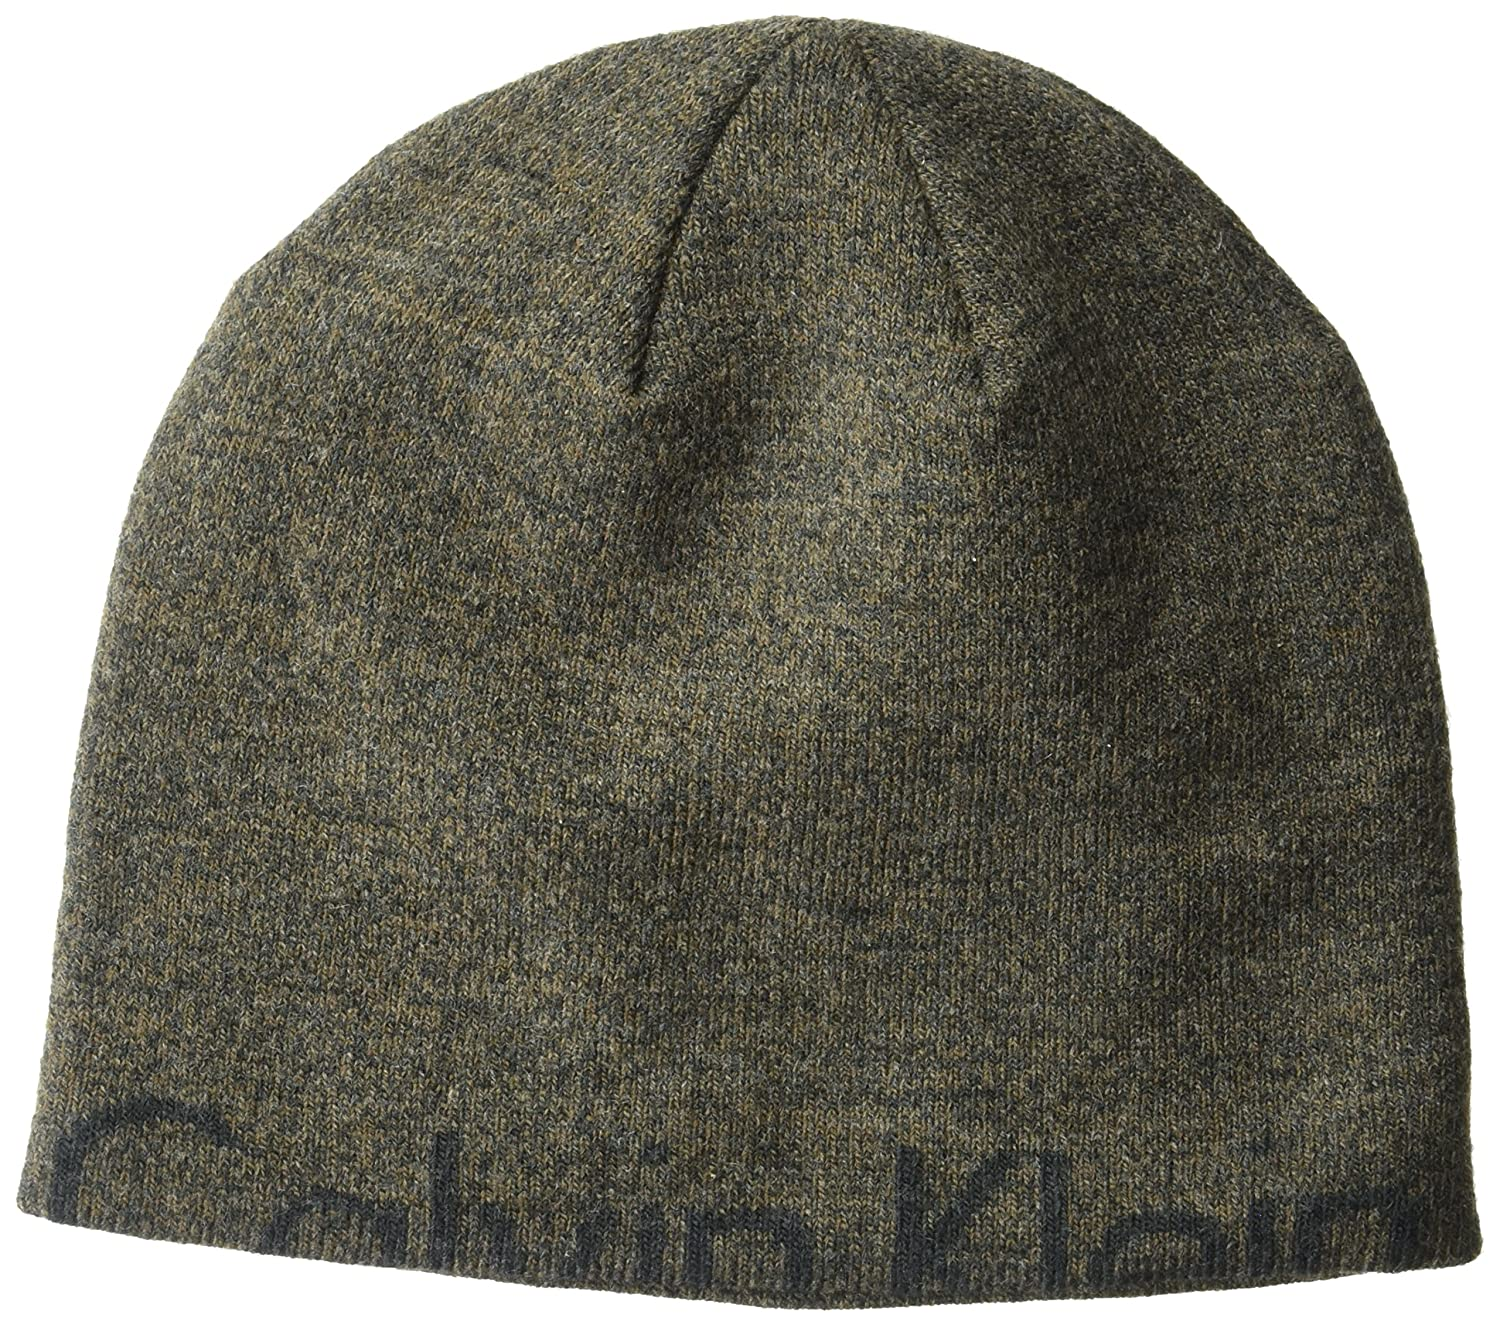 Calvin Klein Unisex Marled Half Logo Winter Hat, Brown, One Size HCKHT245